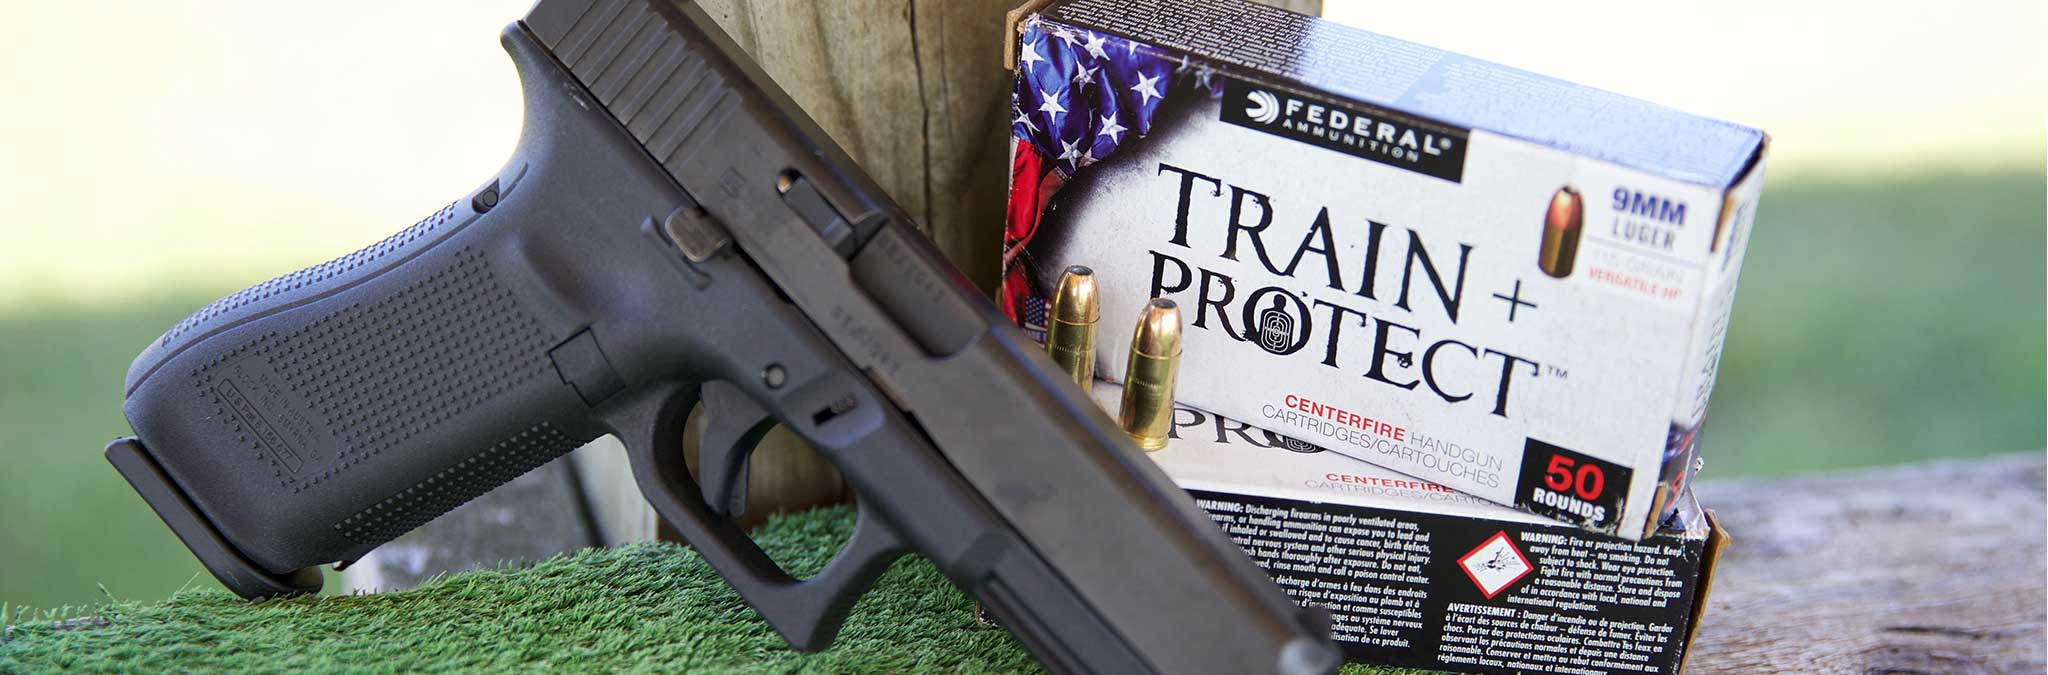 Lifestyle 9mm Federal Handgun Ammo Train and Protect